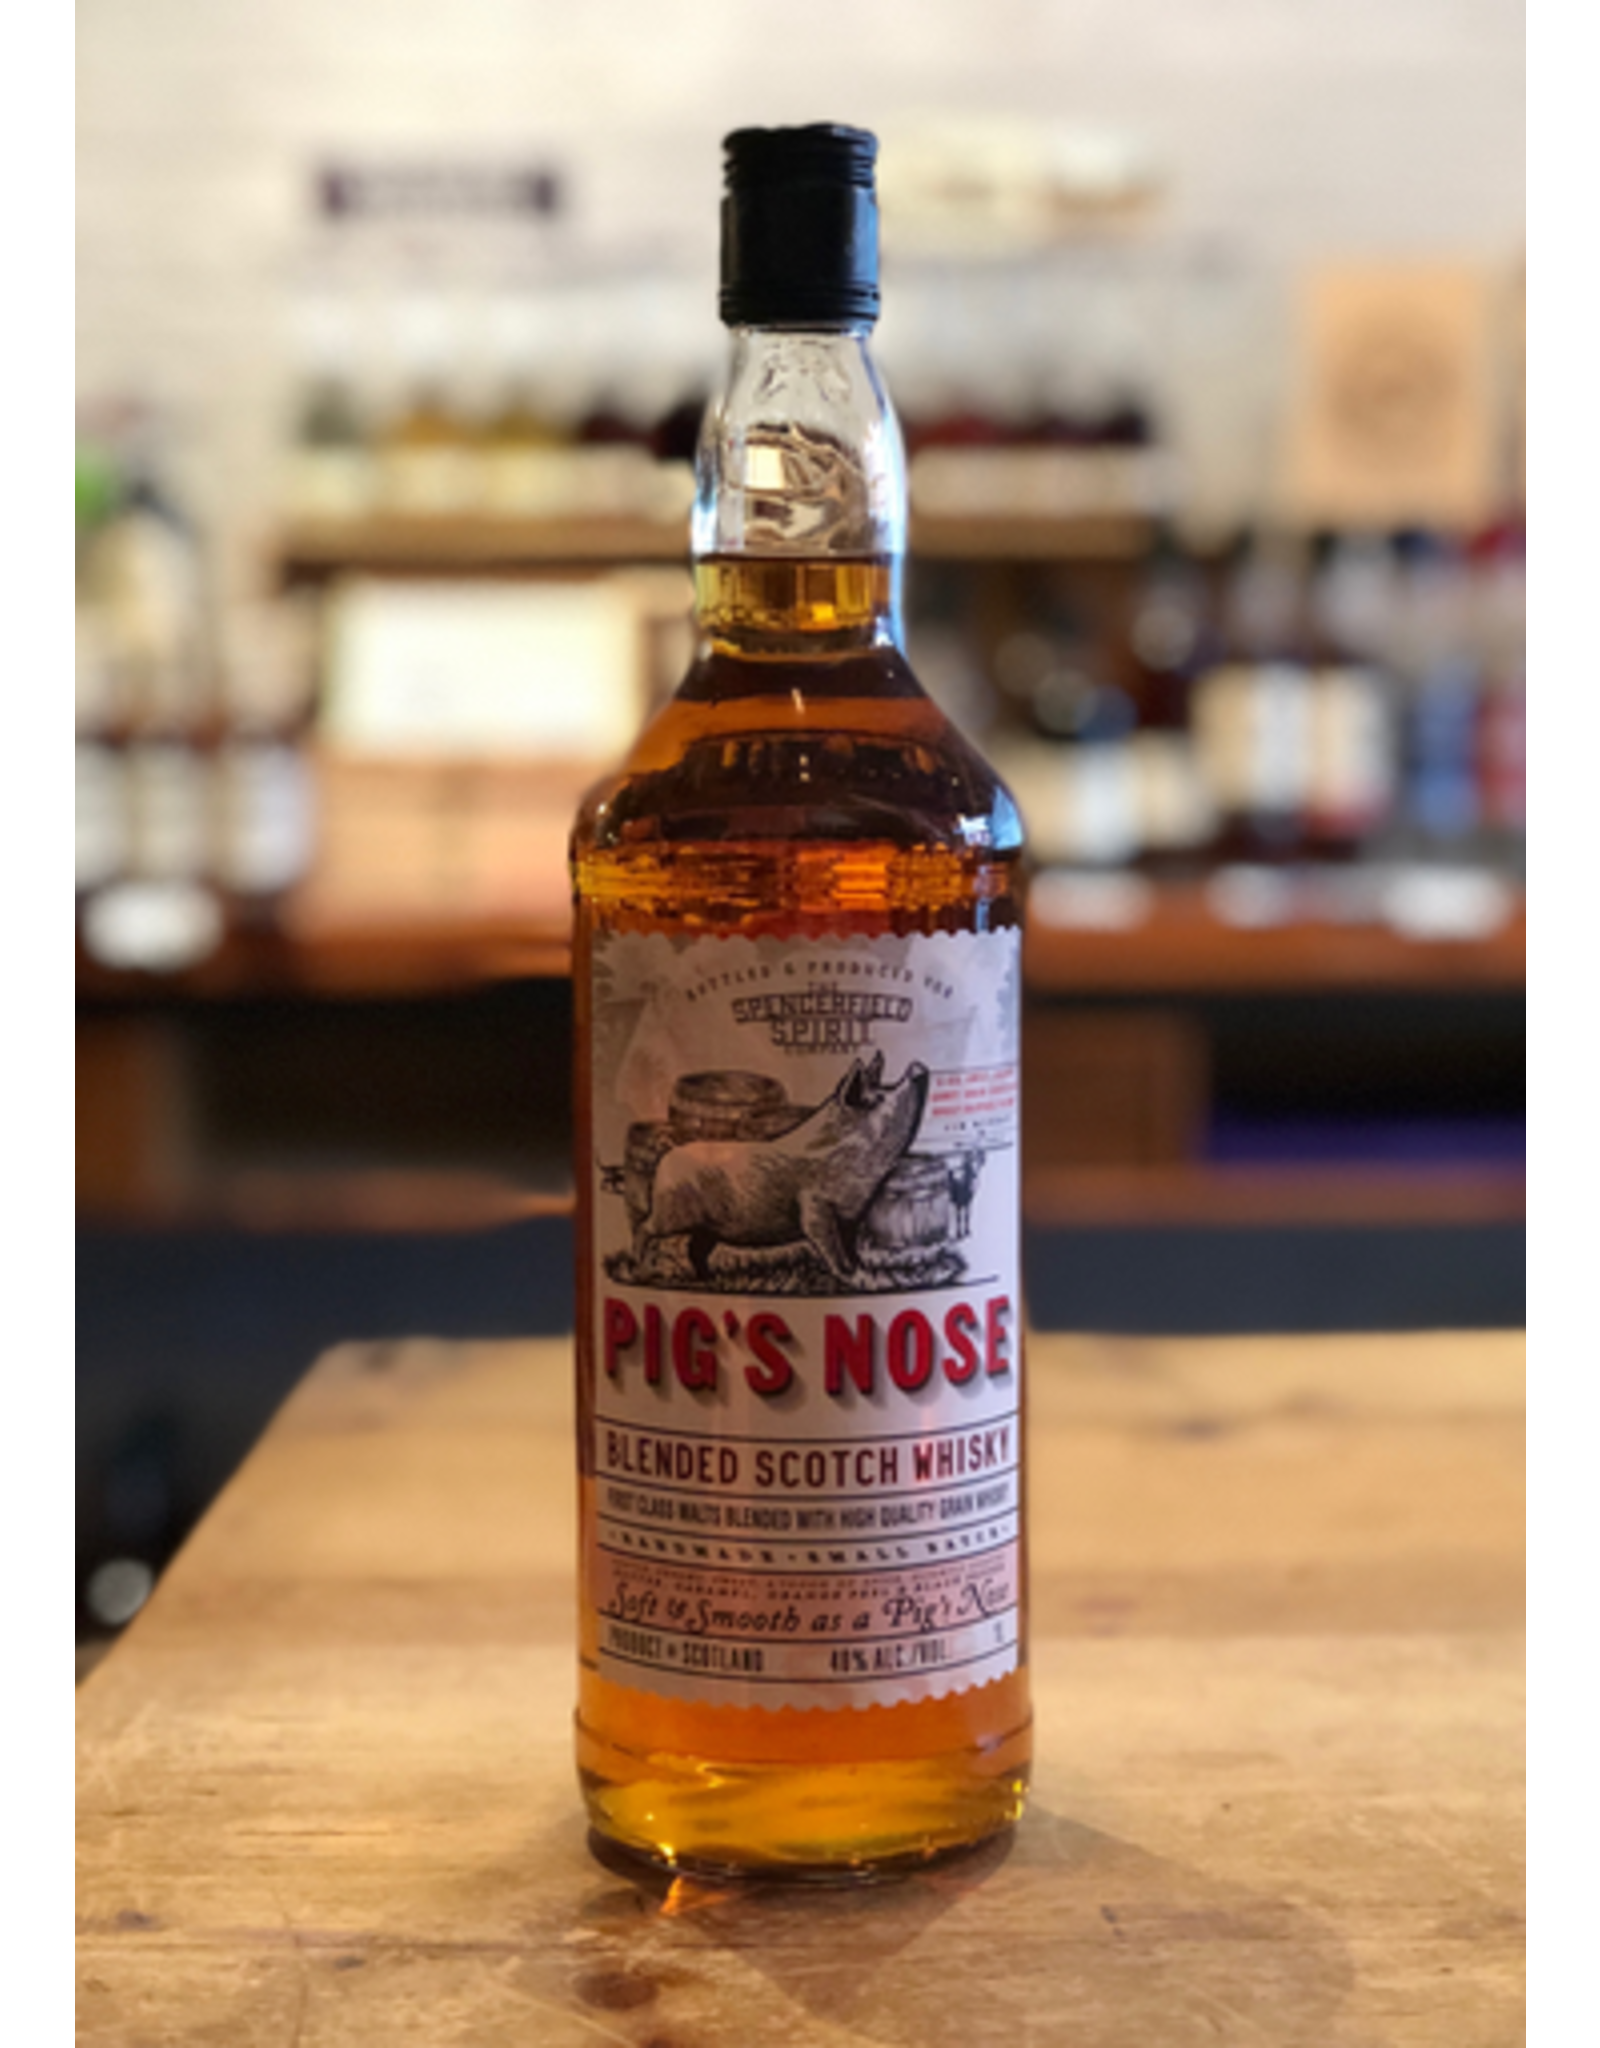 Pig's Nose Blended Scotch Whisky - Scotland (1Ltr)